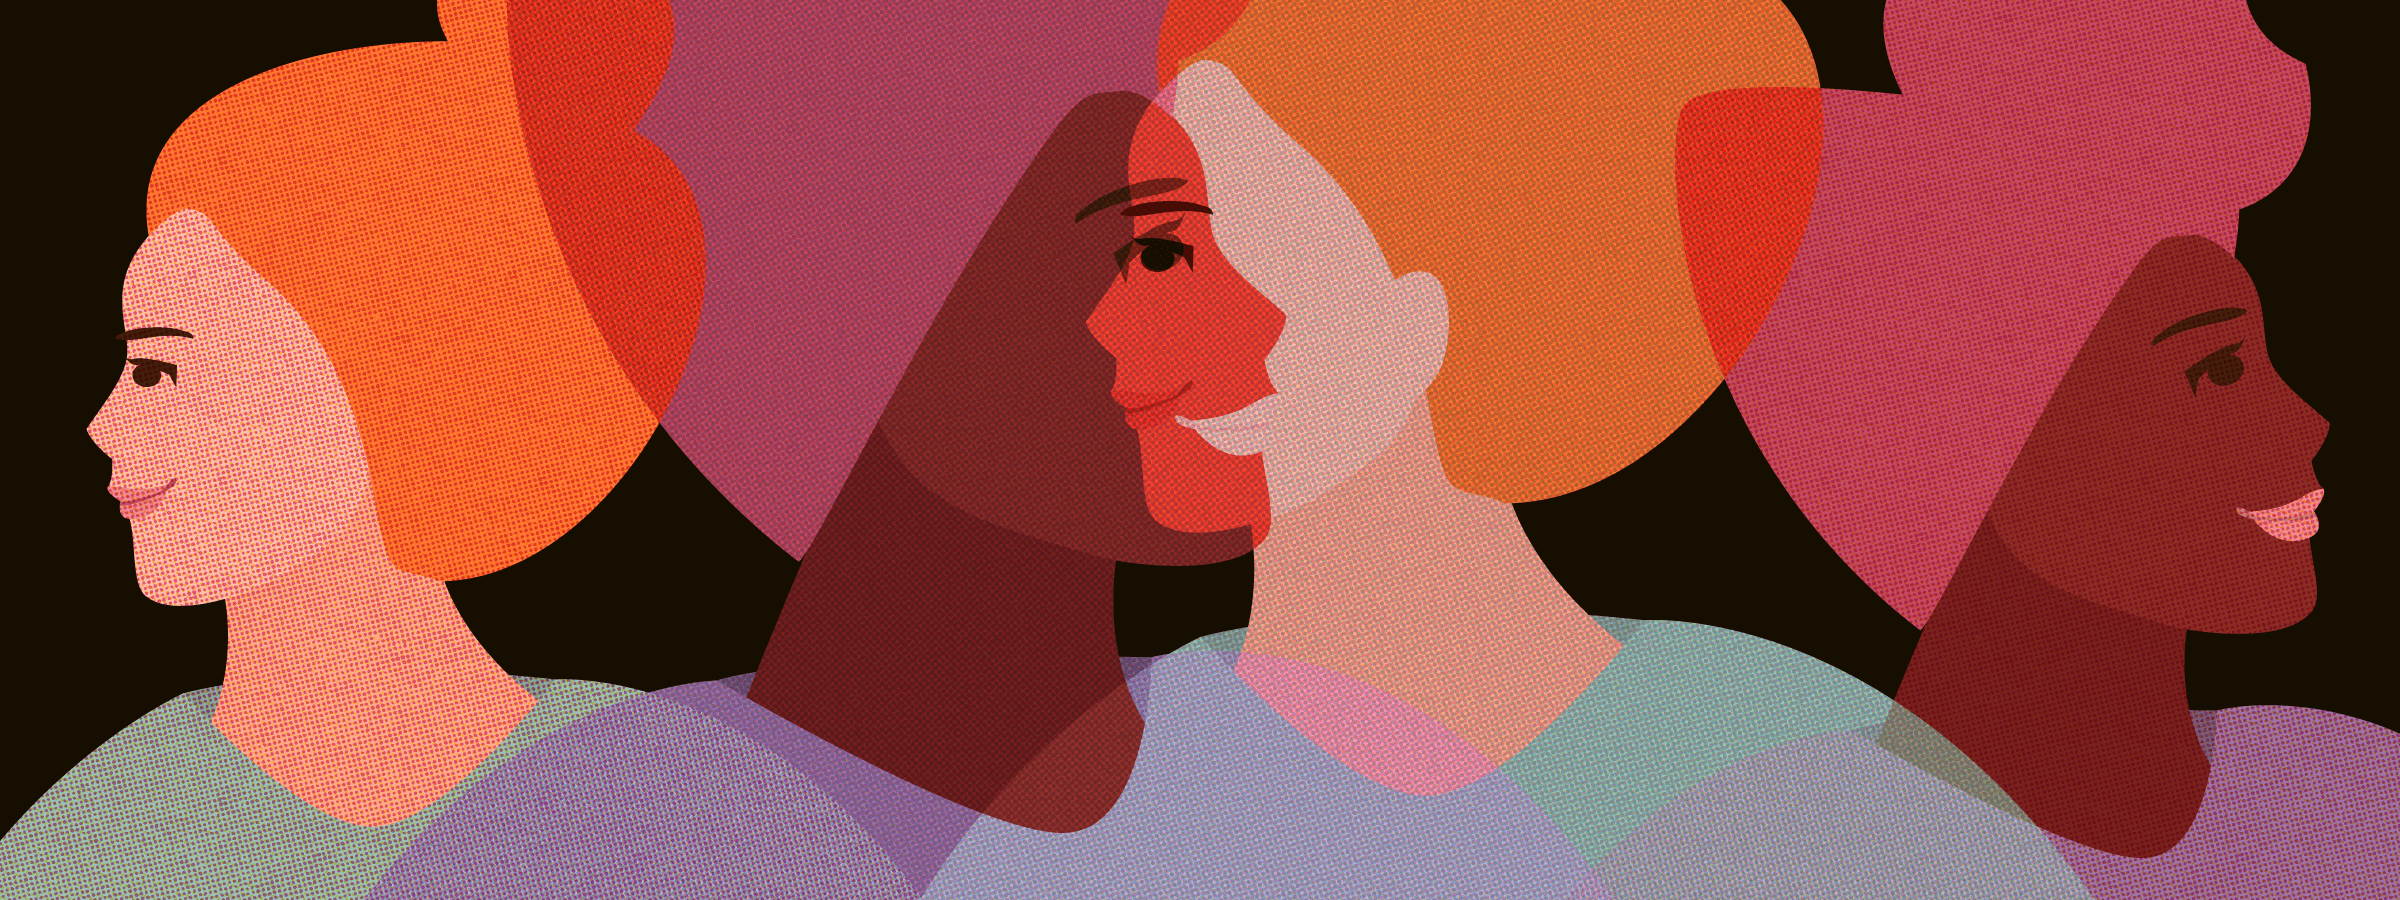 Abstract illustration of two women overlapping, one Black and one white.